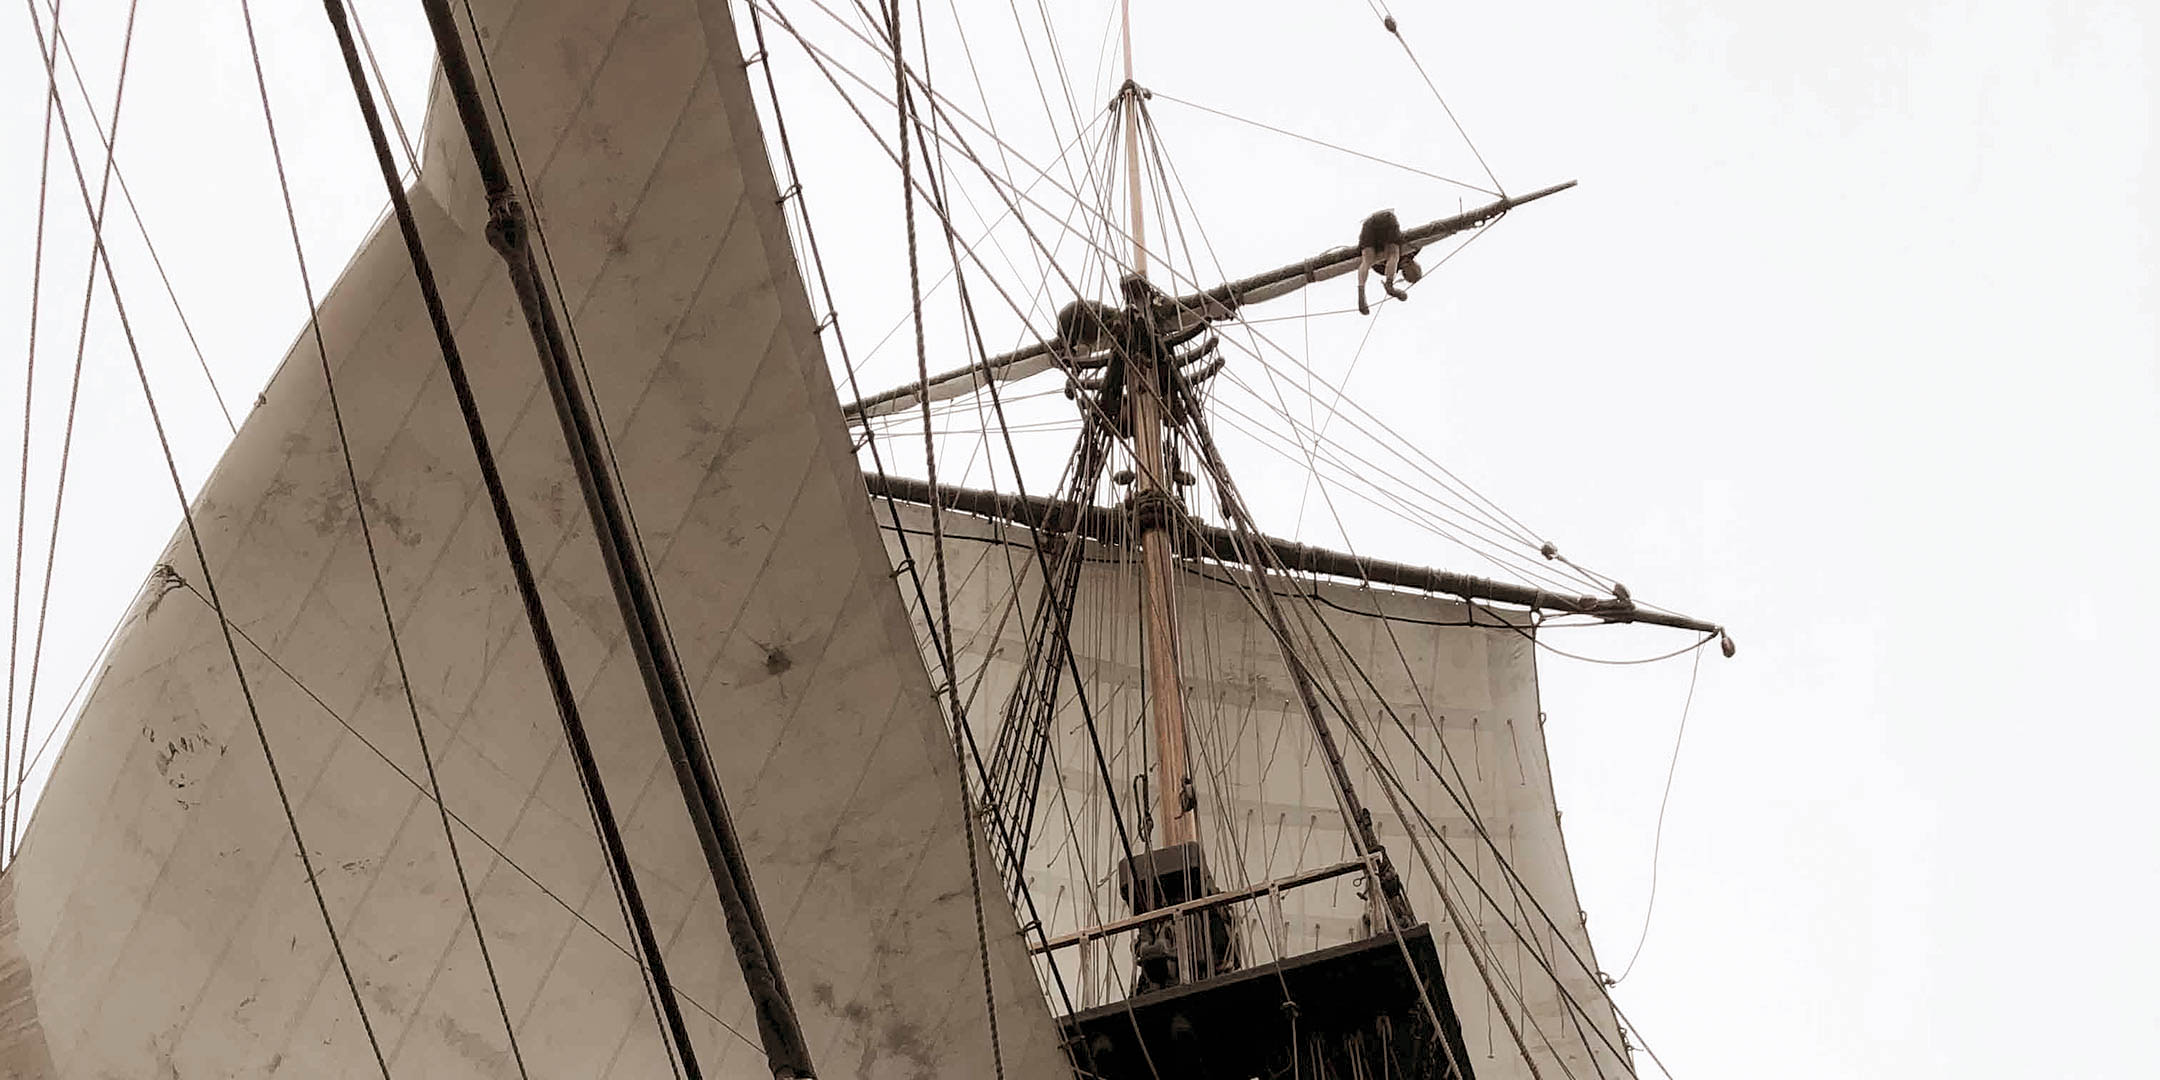 A regular blog from the Endeavour crew was they sail.